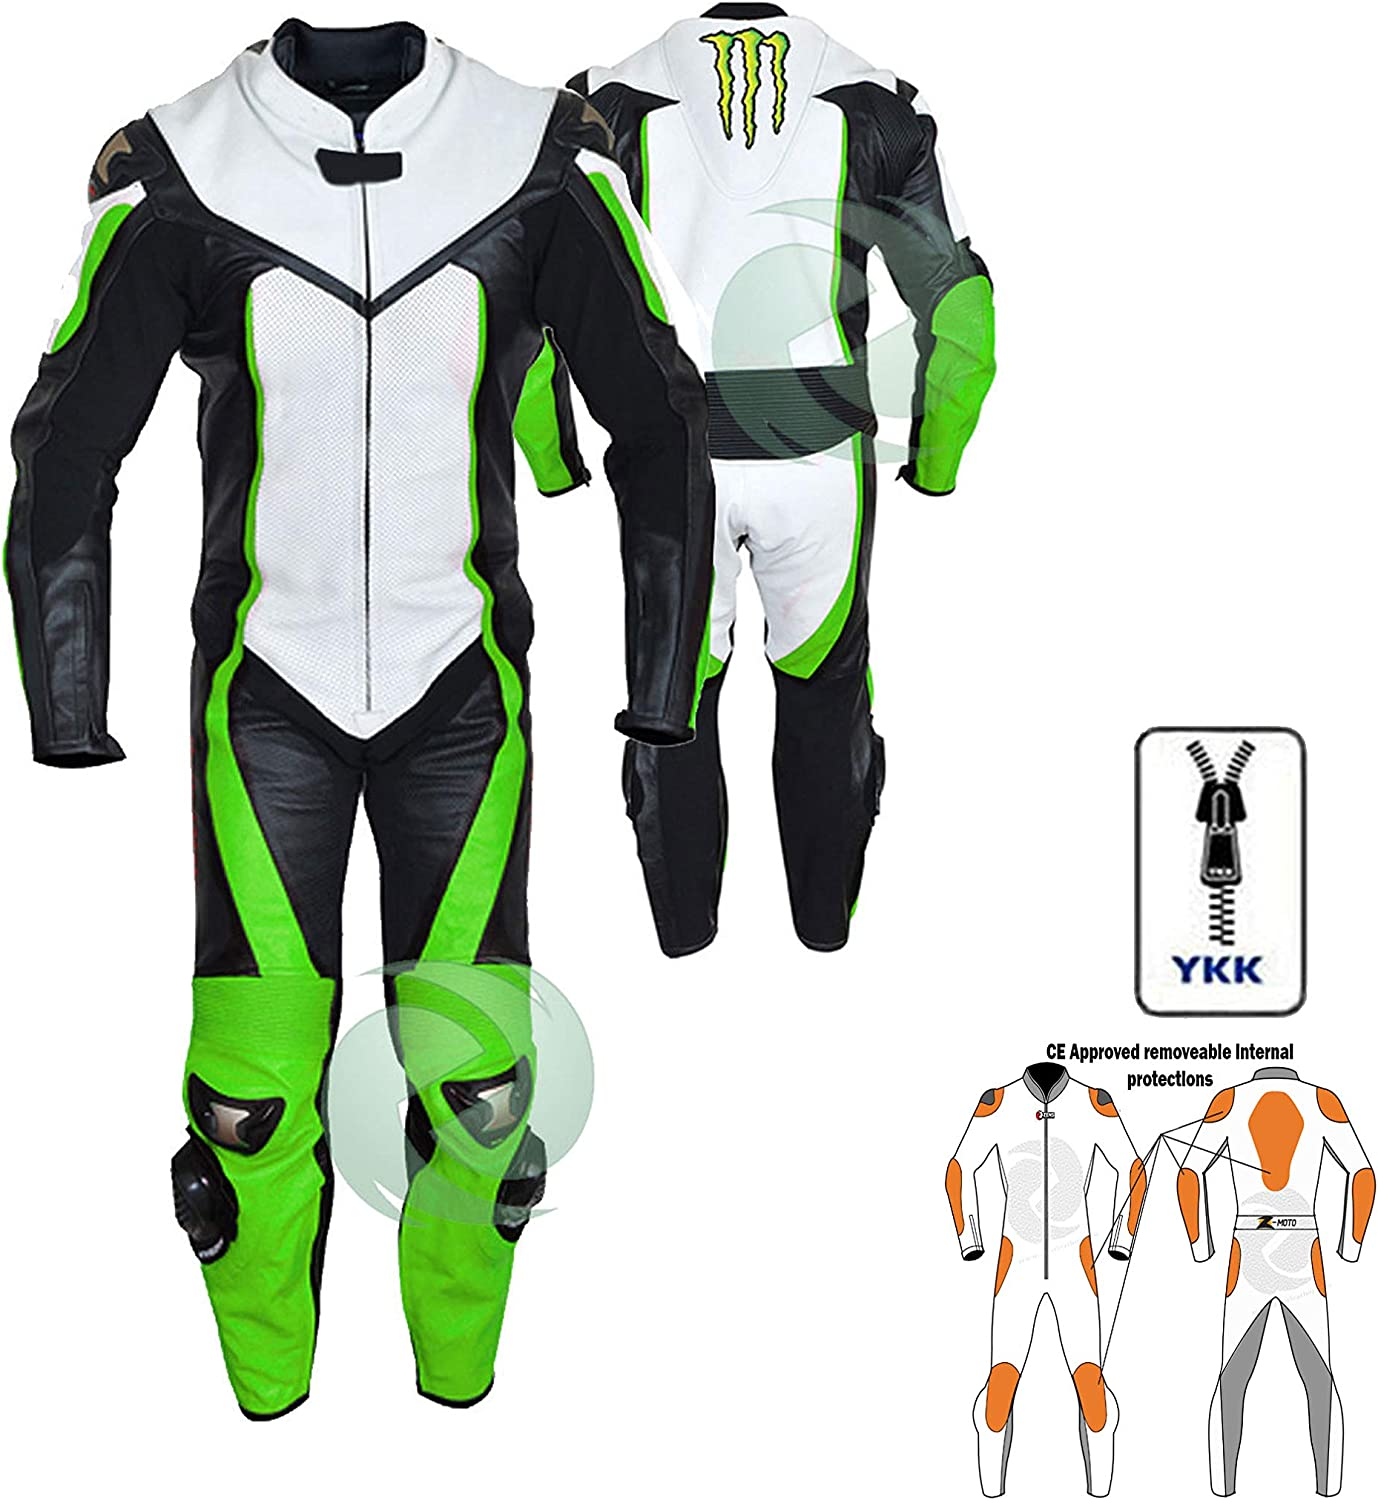 S White motorbike leathers with racing flourecent green come with speed hump and protection one piece motorcycle wear zens leather